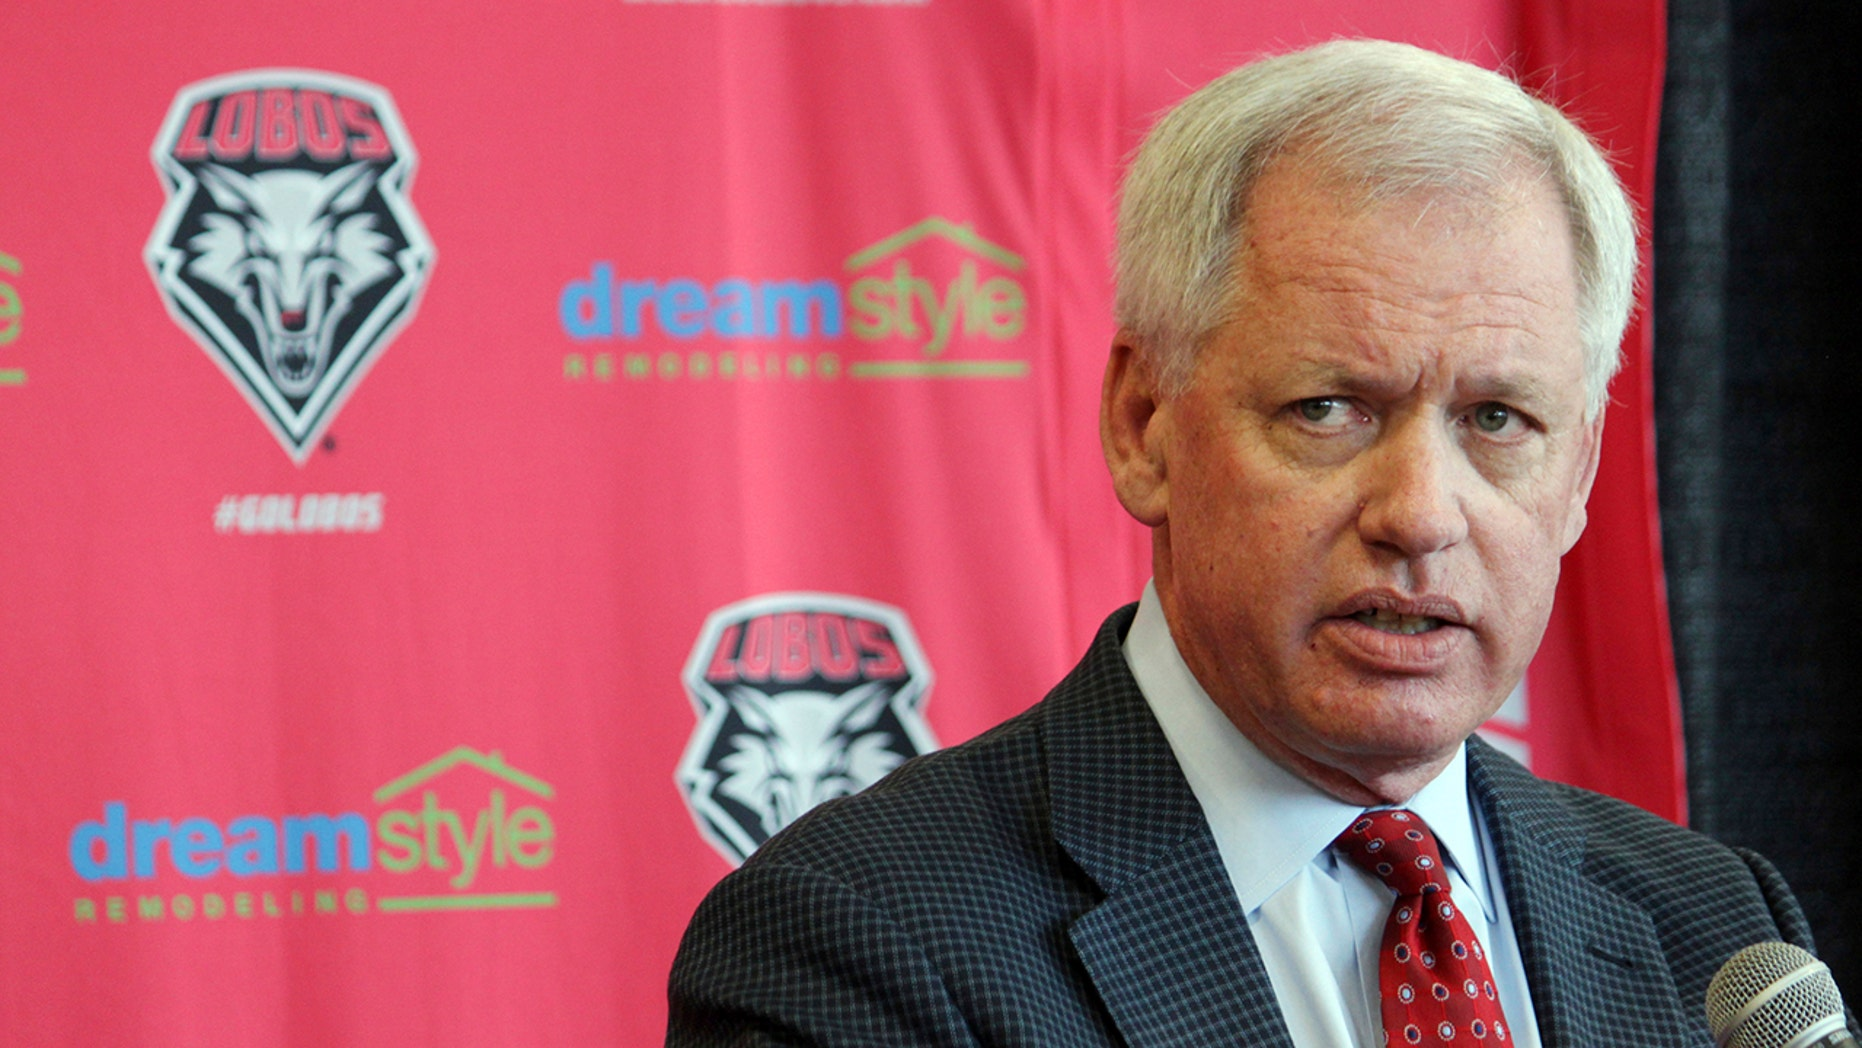 FILE - In this May 3, 2017, file photo, then-University of New Mexico athletics director Paul Krebs answers questions during a news conference in Albuquerque, N.M. Documents filed Wednesday, Aug. 21, 2019, in state district court show that a grand jury indicted the Krebs, 63, on embezzlement, larceny, and tampering charges in connection with an investigation into questionable spending by the school's troubled athletics department. (AP Photo/Susan Montoya Bryan, File)